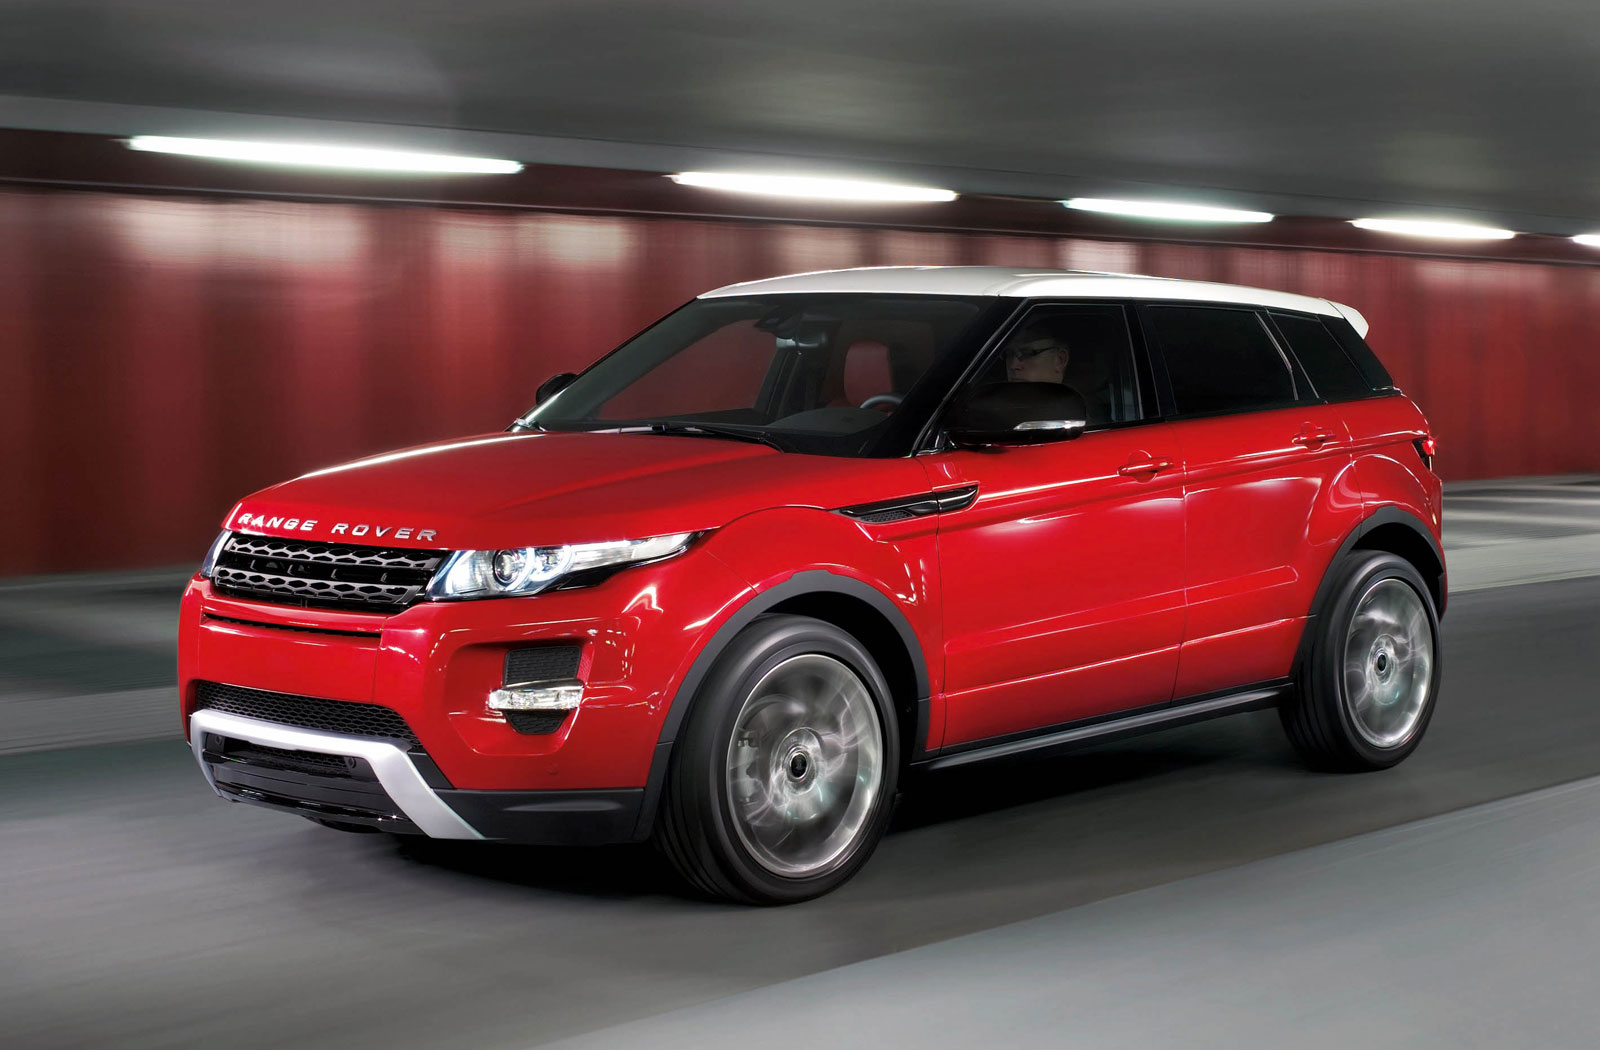 sport car garage 2012 land rover range rover evoque 5 door. Black Bedroom Furniture Sets. Home Design Ideas